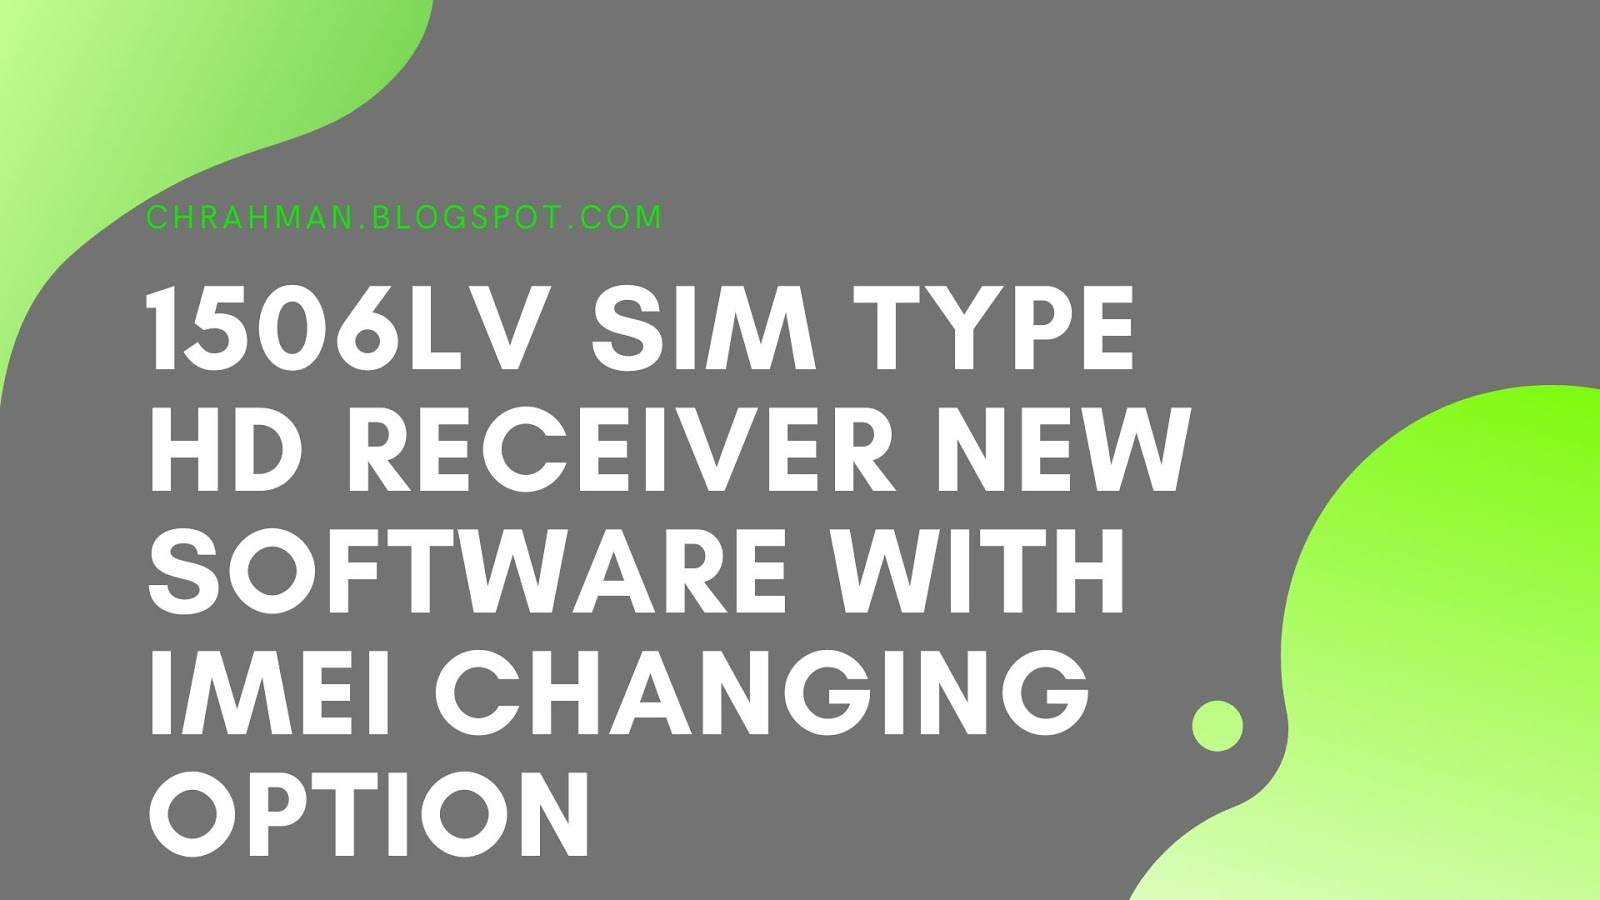 1506LV SIM TYPE HD RECEIVER NEW SOFTWARE WITH IMEI CHANGING OPTION 22 OCTOBER 2019